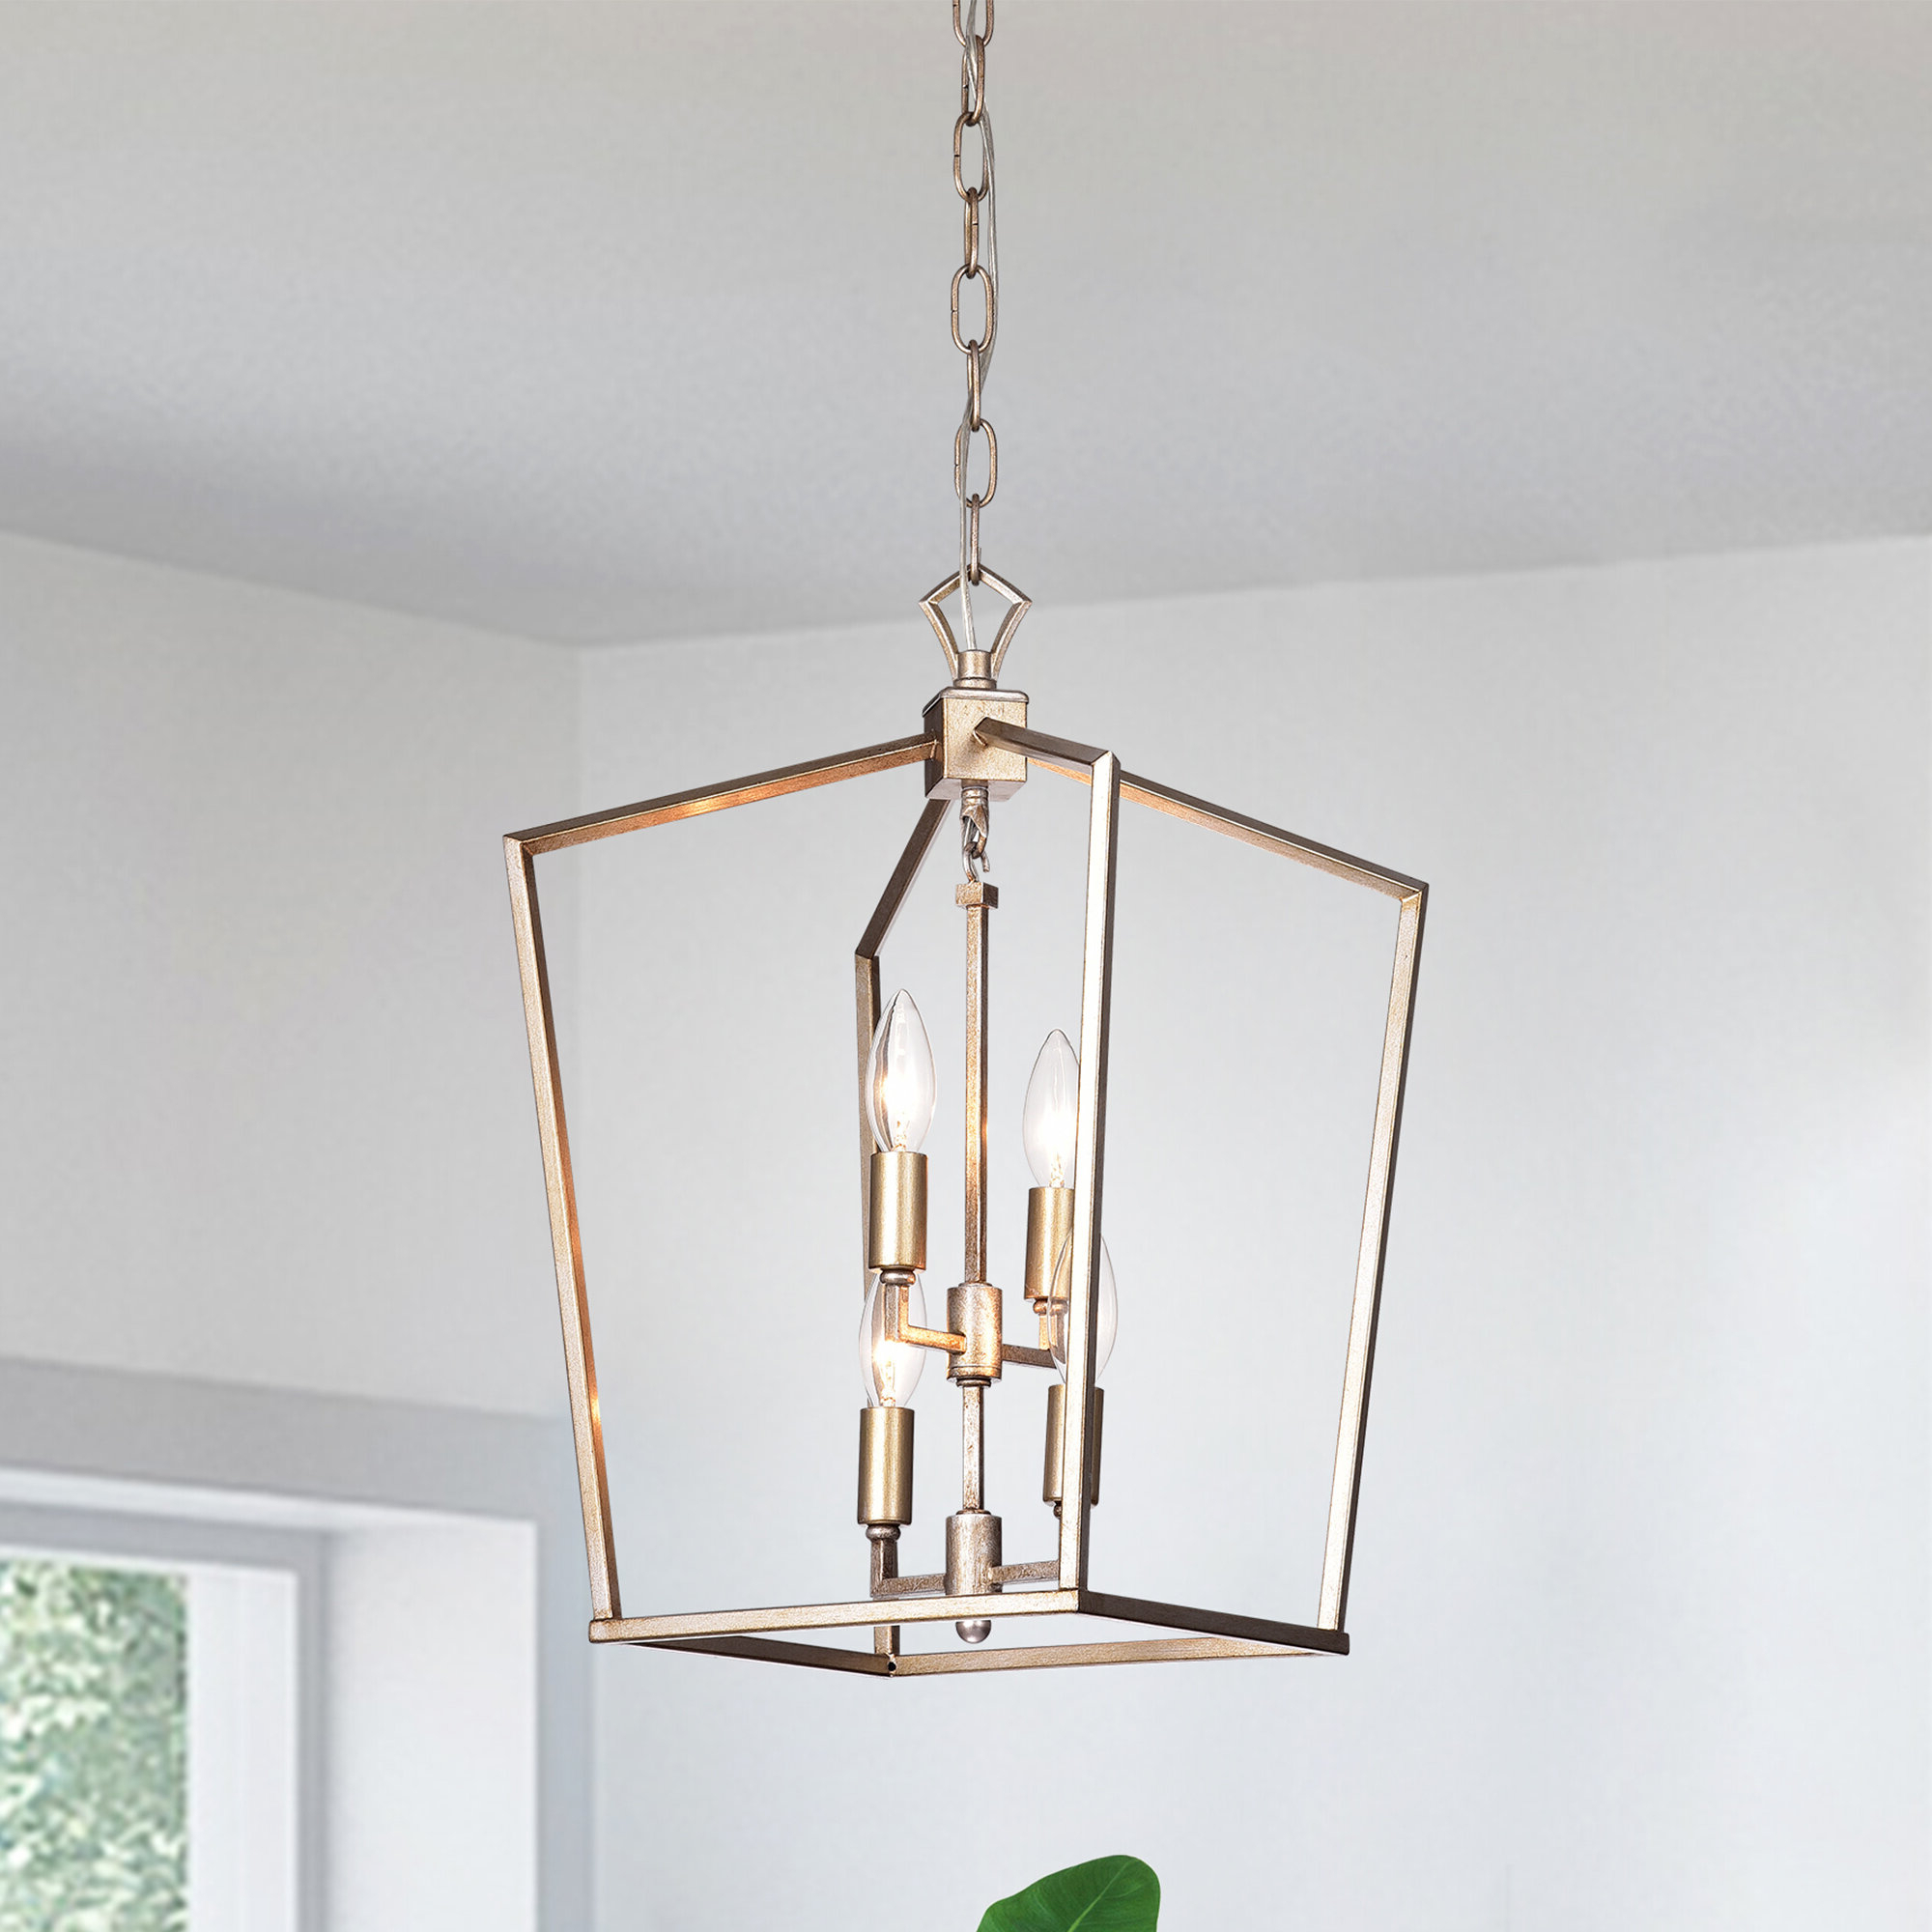 Massasoit Metal 4 Light Square Chandelier Regarding Newest Tiana 4 Light Geometric Chandeliers (View 10 of 20)